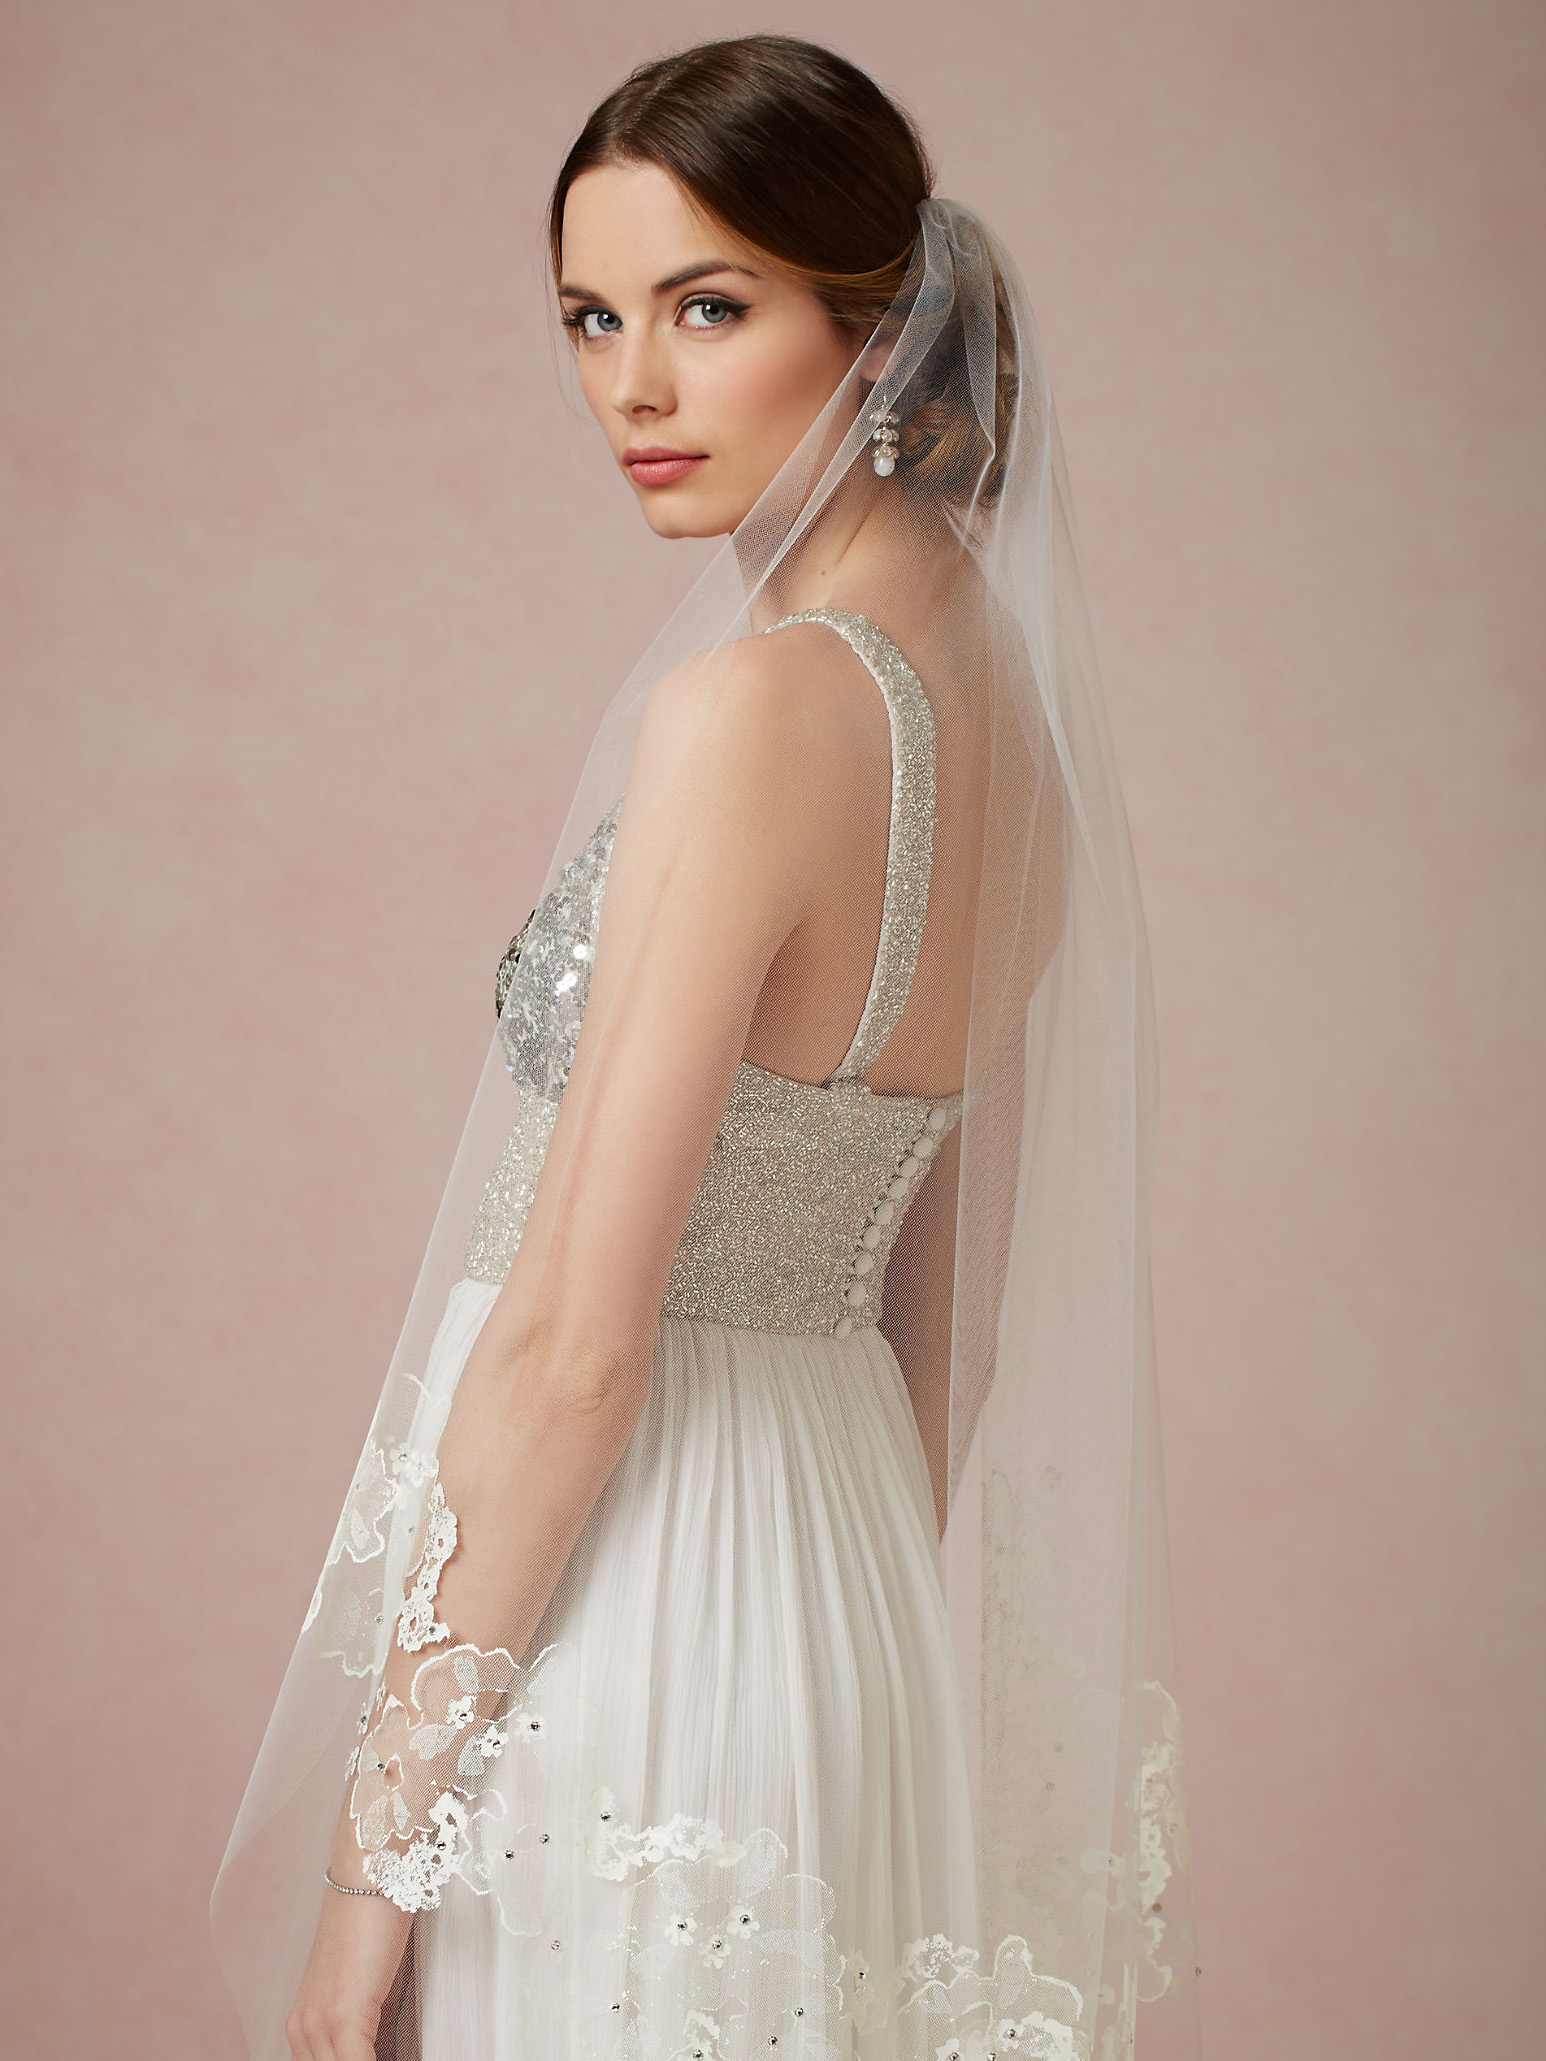 240214282556 Snag a deal on your wedding gown or shop from the comfort of your own home  with these top bridal e-shops.